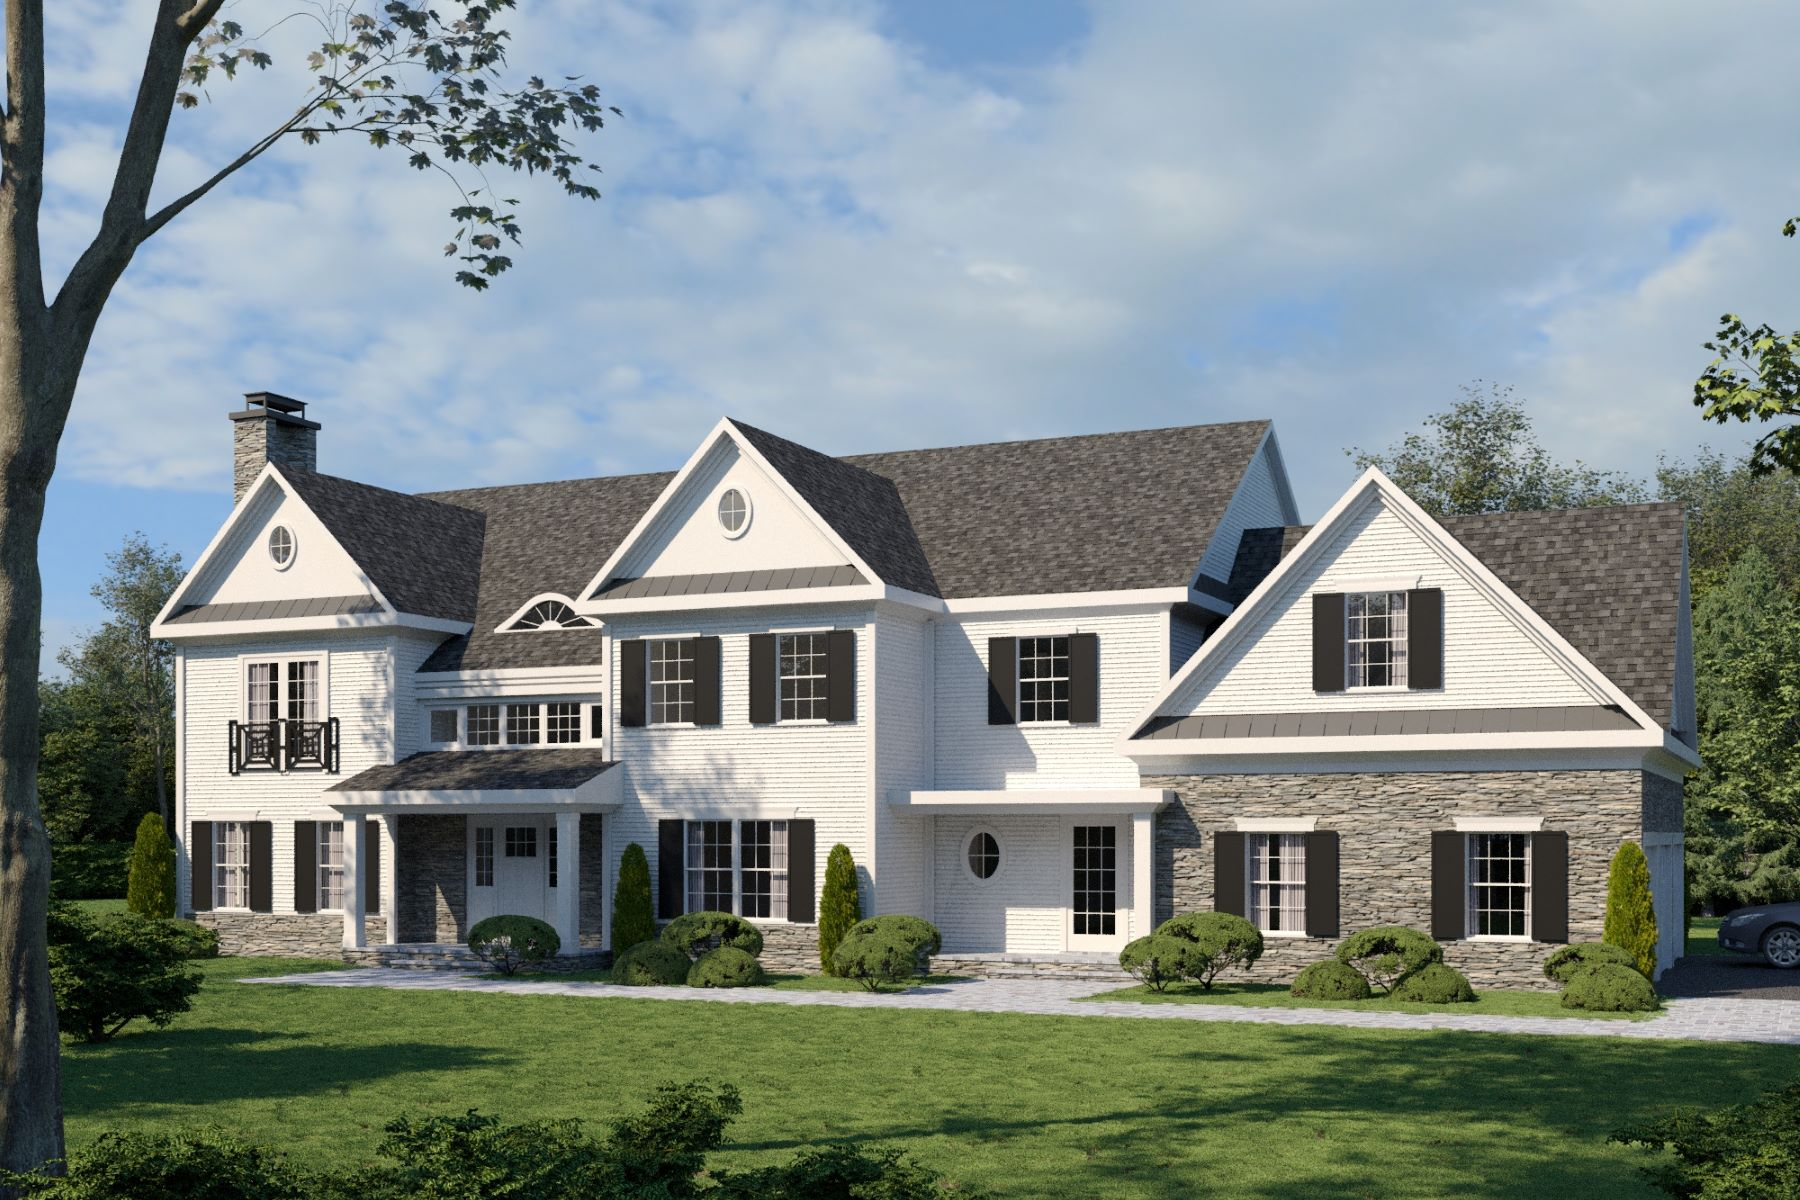 Single Family Homes for Active at Welcome to Chauncey Estates! 12 Chauncey Circle Ardsley, New York 10502 United States